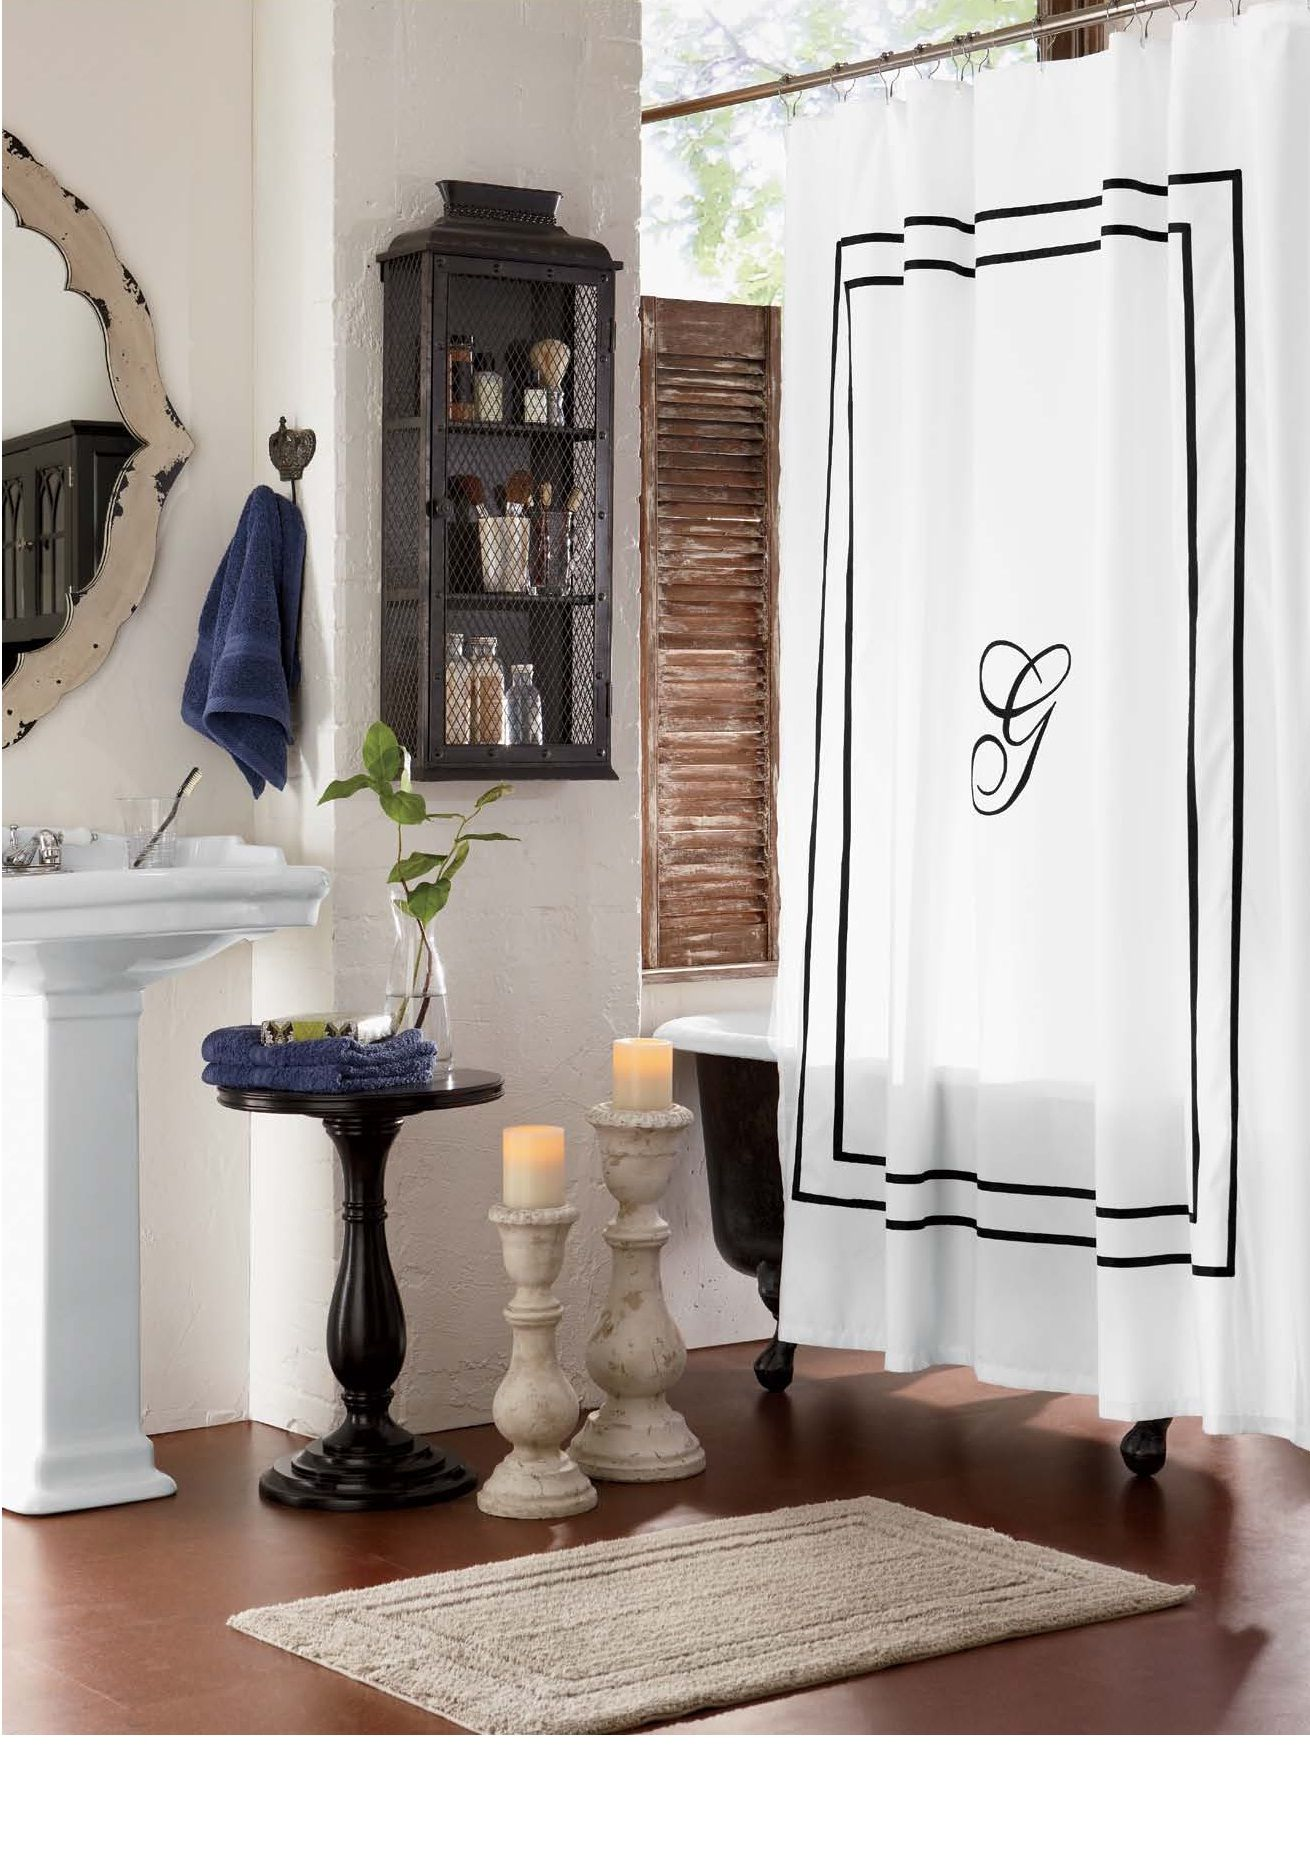 Black and white monogrammed shower curtain - Monogrammed Shower Curtain Monogrammed Bath Accessories In Black On White Bring Refinement To